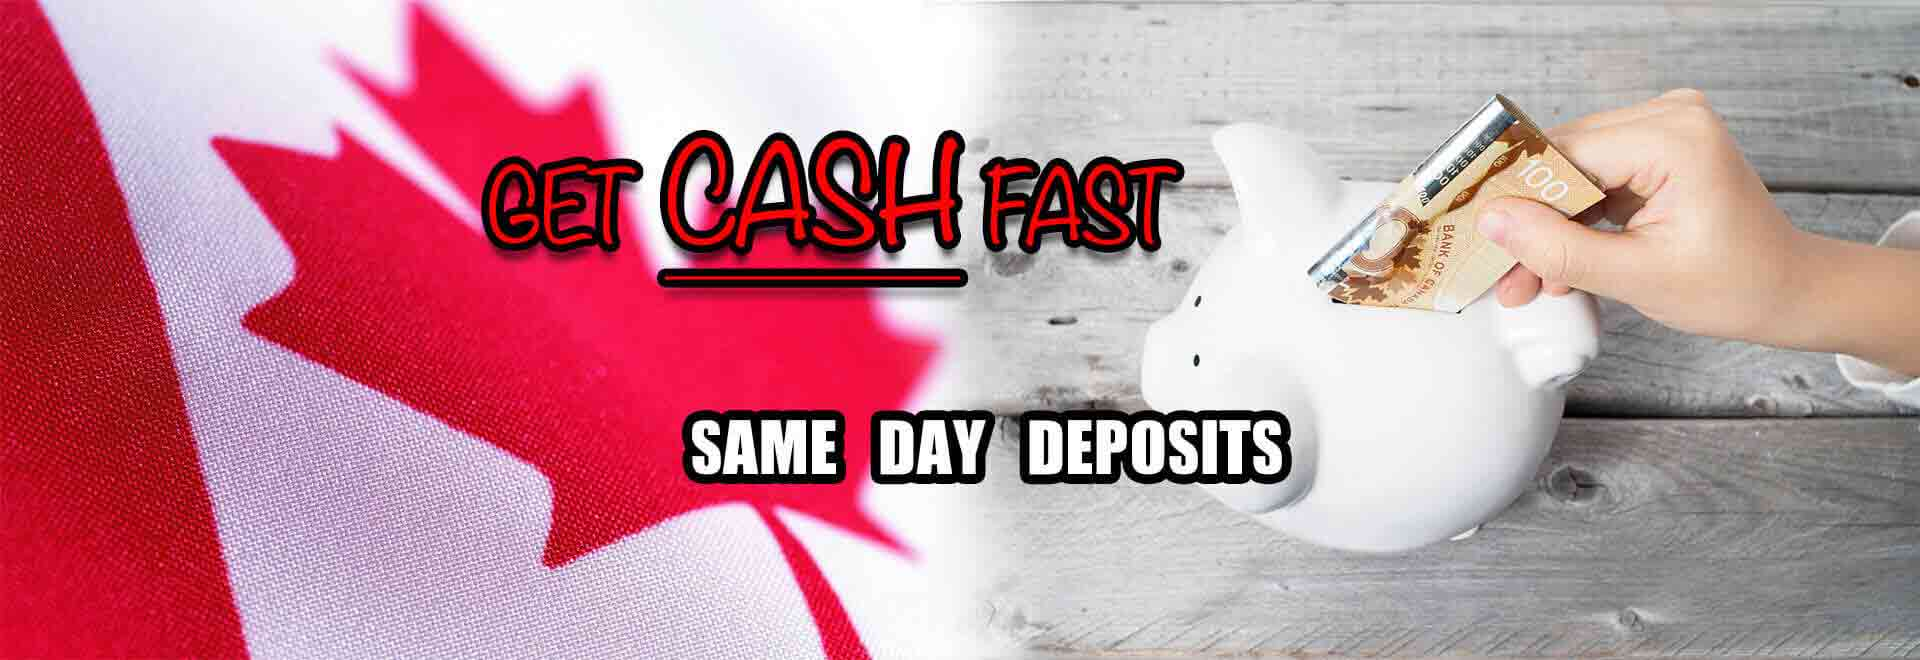 CapitalCash.ca - Payday Loans Online with No Credit Check